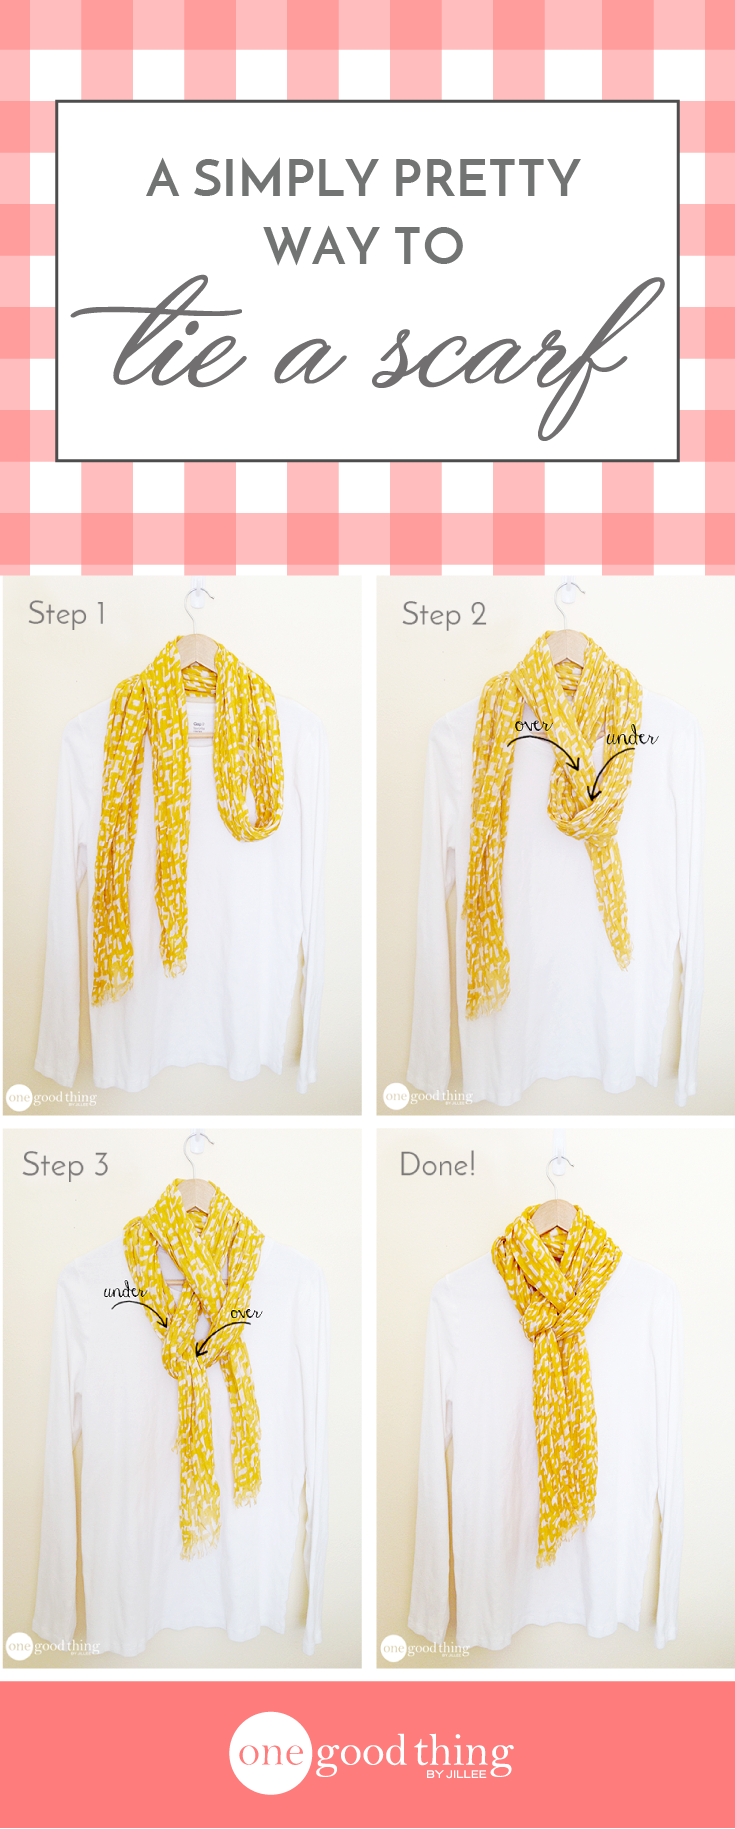 How to tie a scarf copy wear it pinterest tie a scarf how to tie a scarf copy ccuart Choice Image